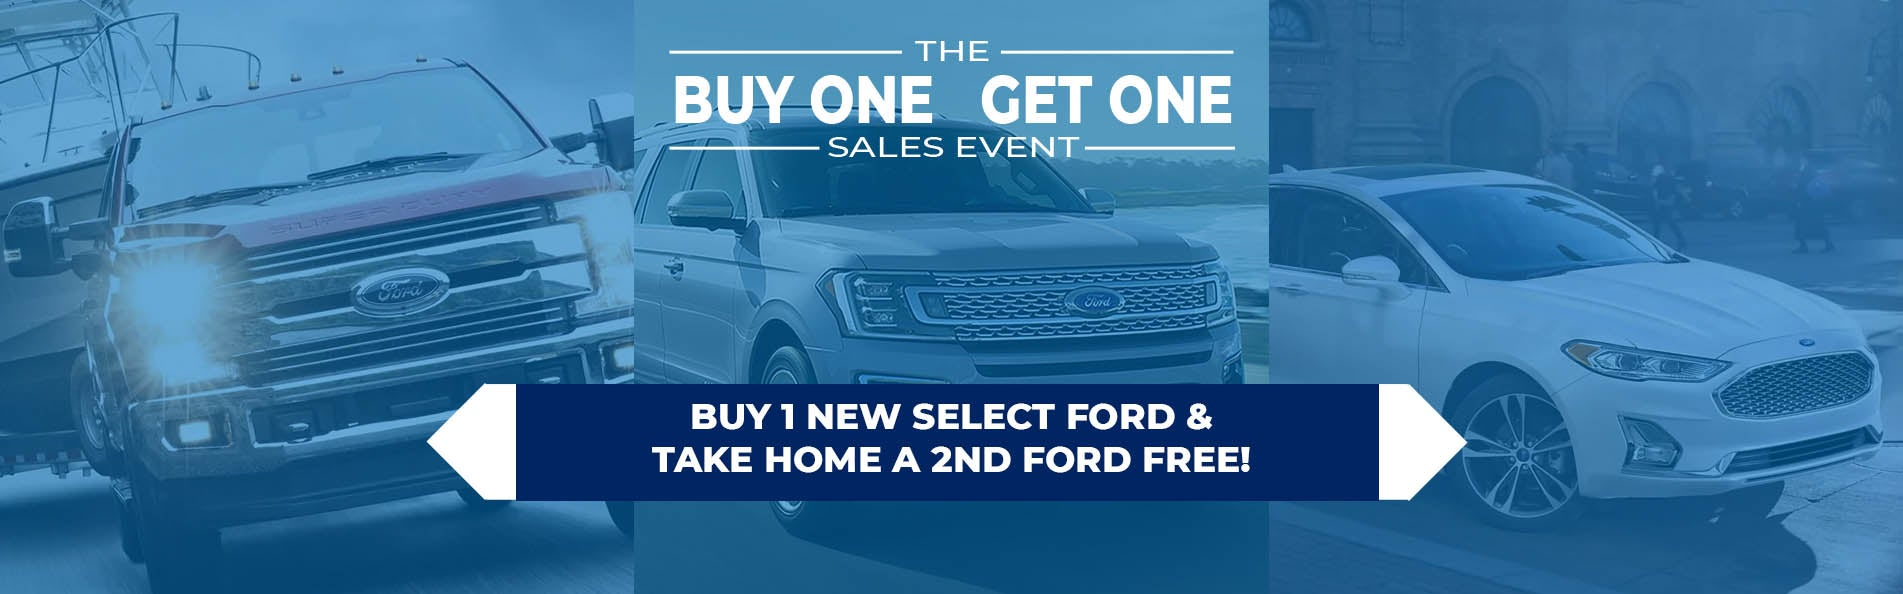 Ford Service Palm Bay Ford Dealership Palm Bay Florida >> Car Dealership Ford Dealership In Tampa Fl Elder Ford Of Tampa